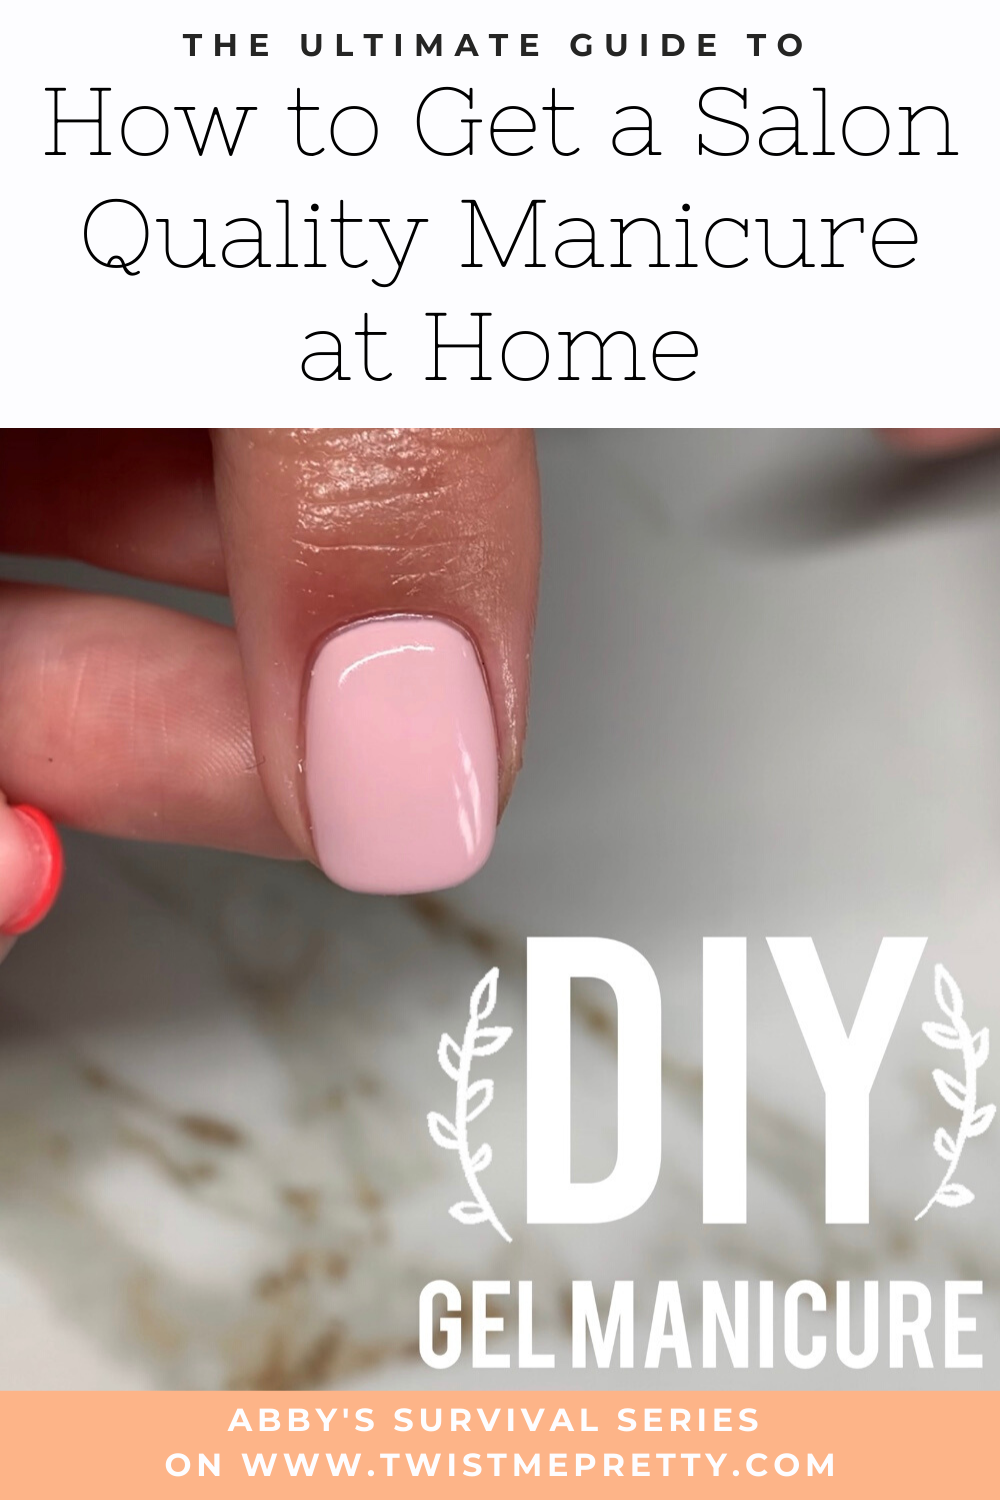 How to Get a Salon Quality Manicure at home with Nails By Kaiti. www.TwistMePretty.com